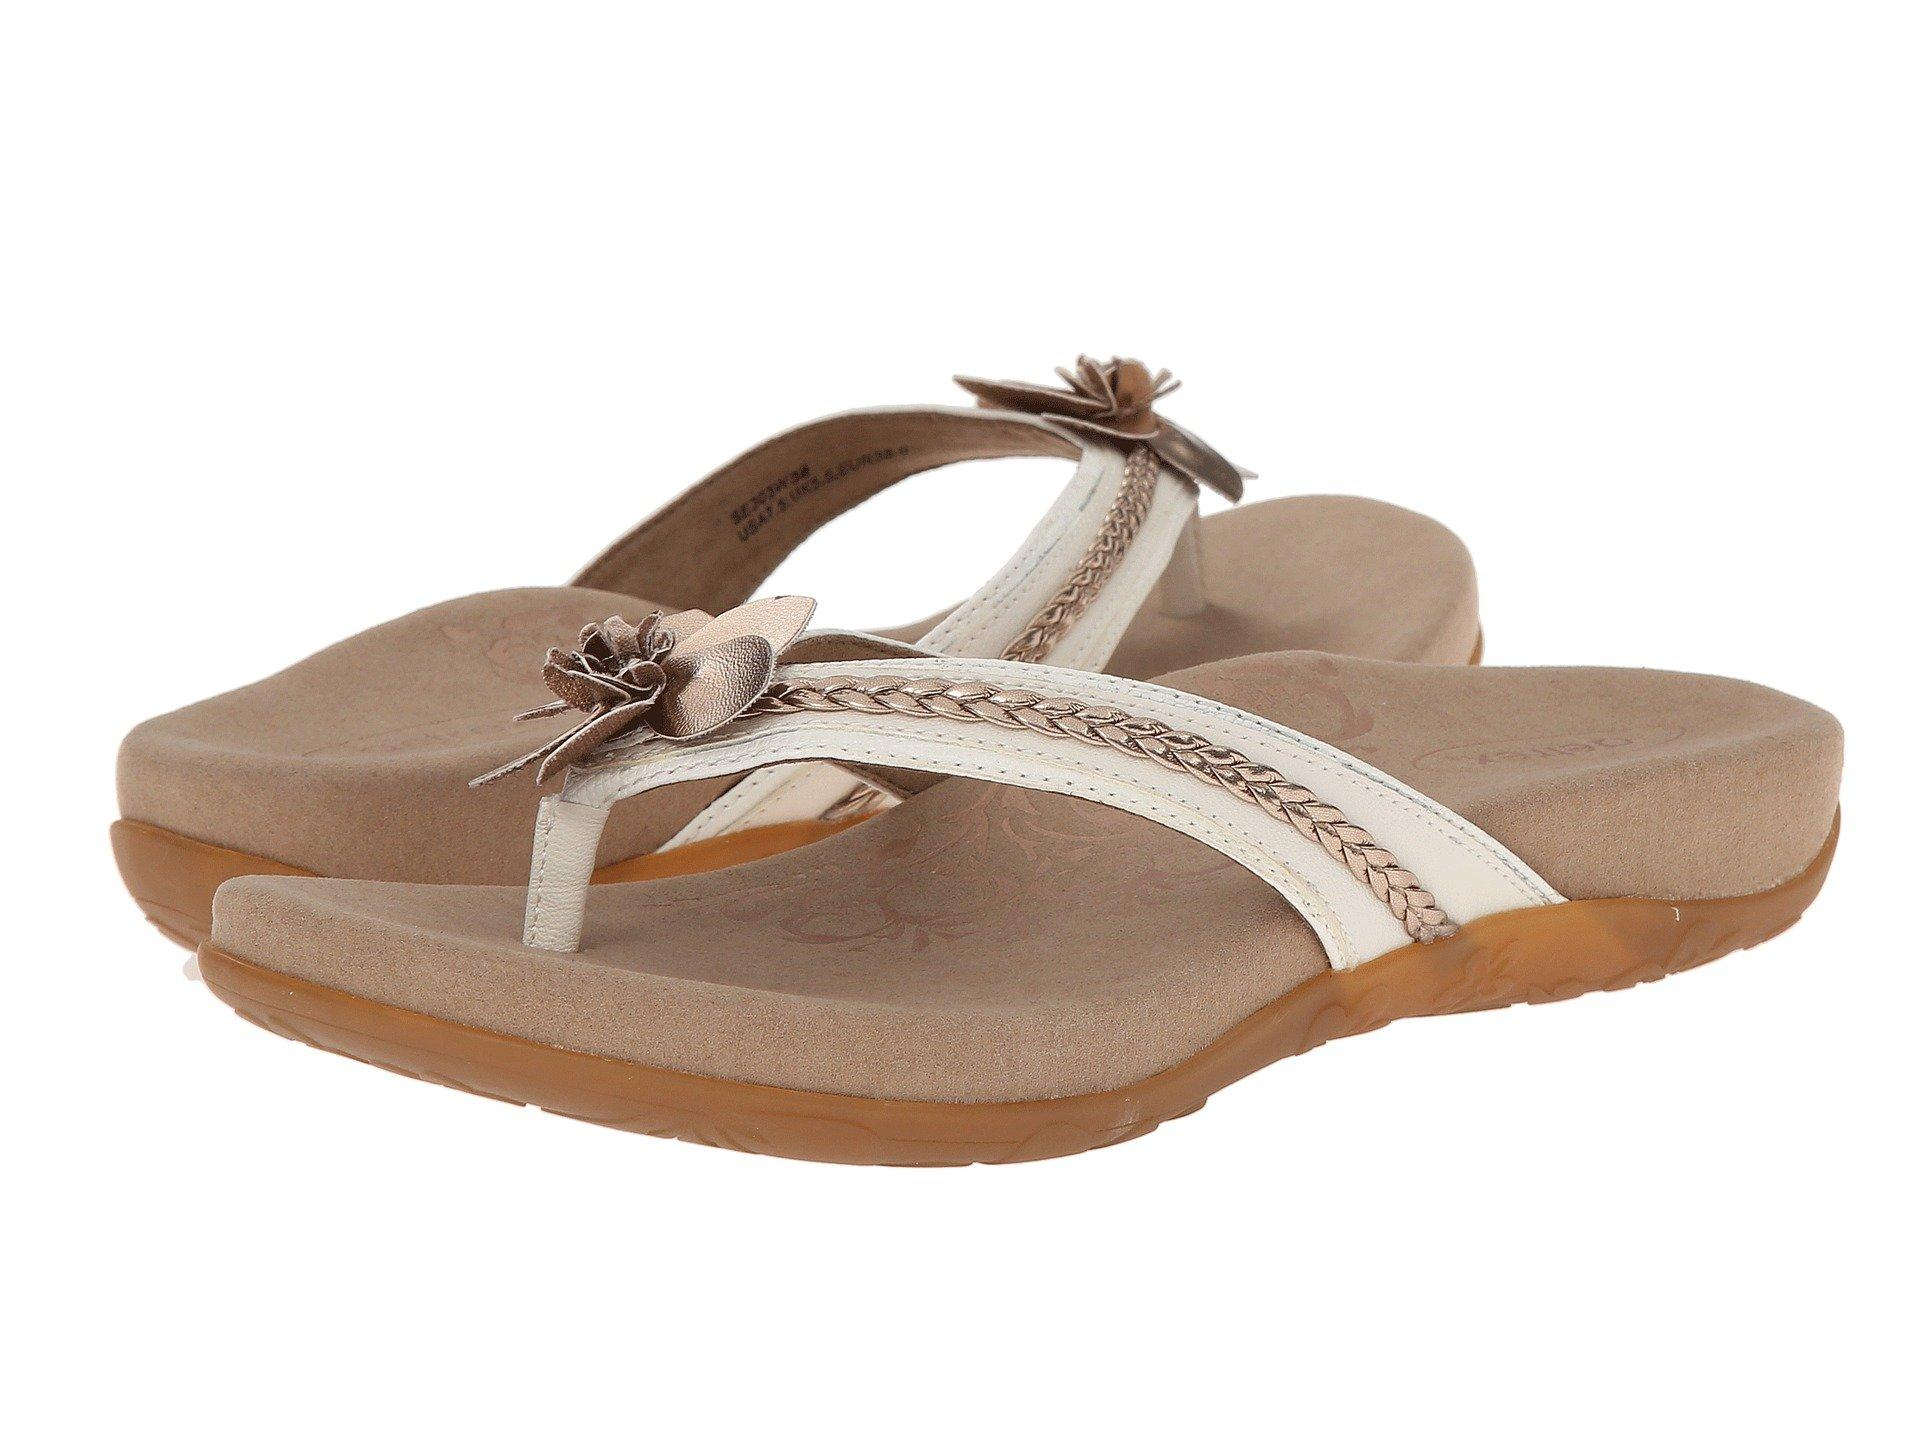 db2a37b219b Gallery. Previously sold at  6PM · Women s Thong Sandals ...